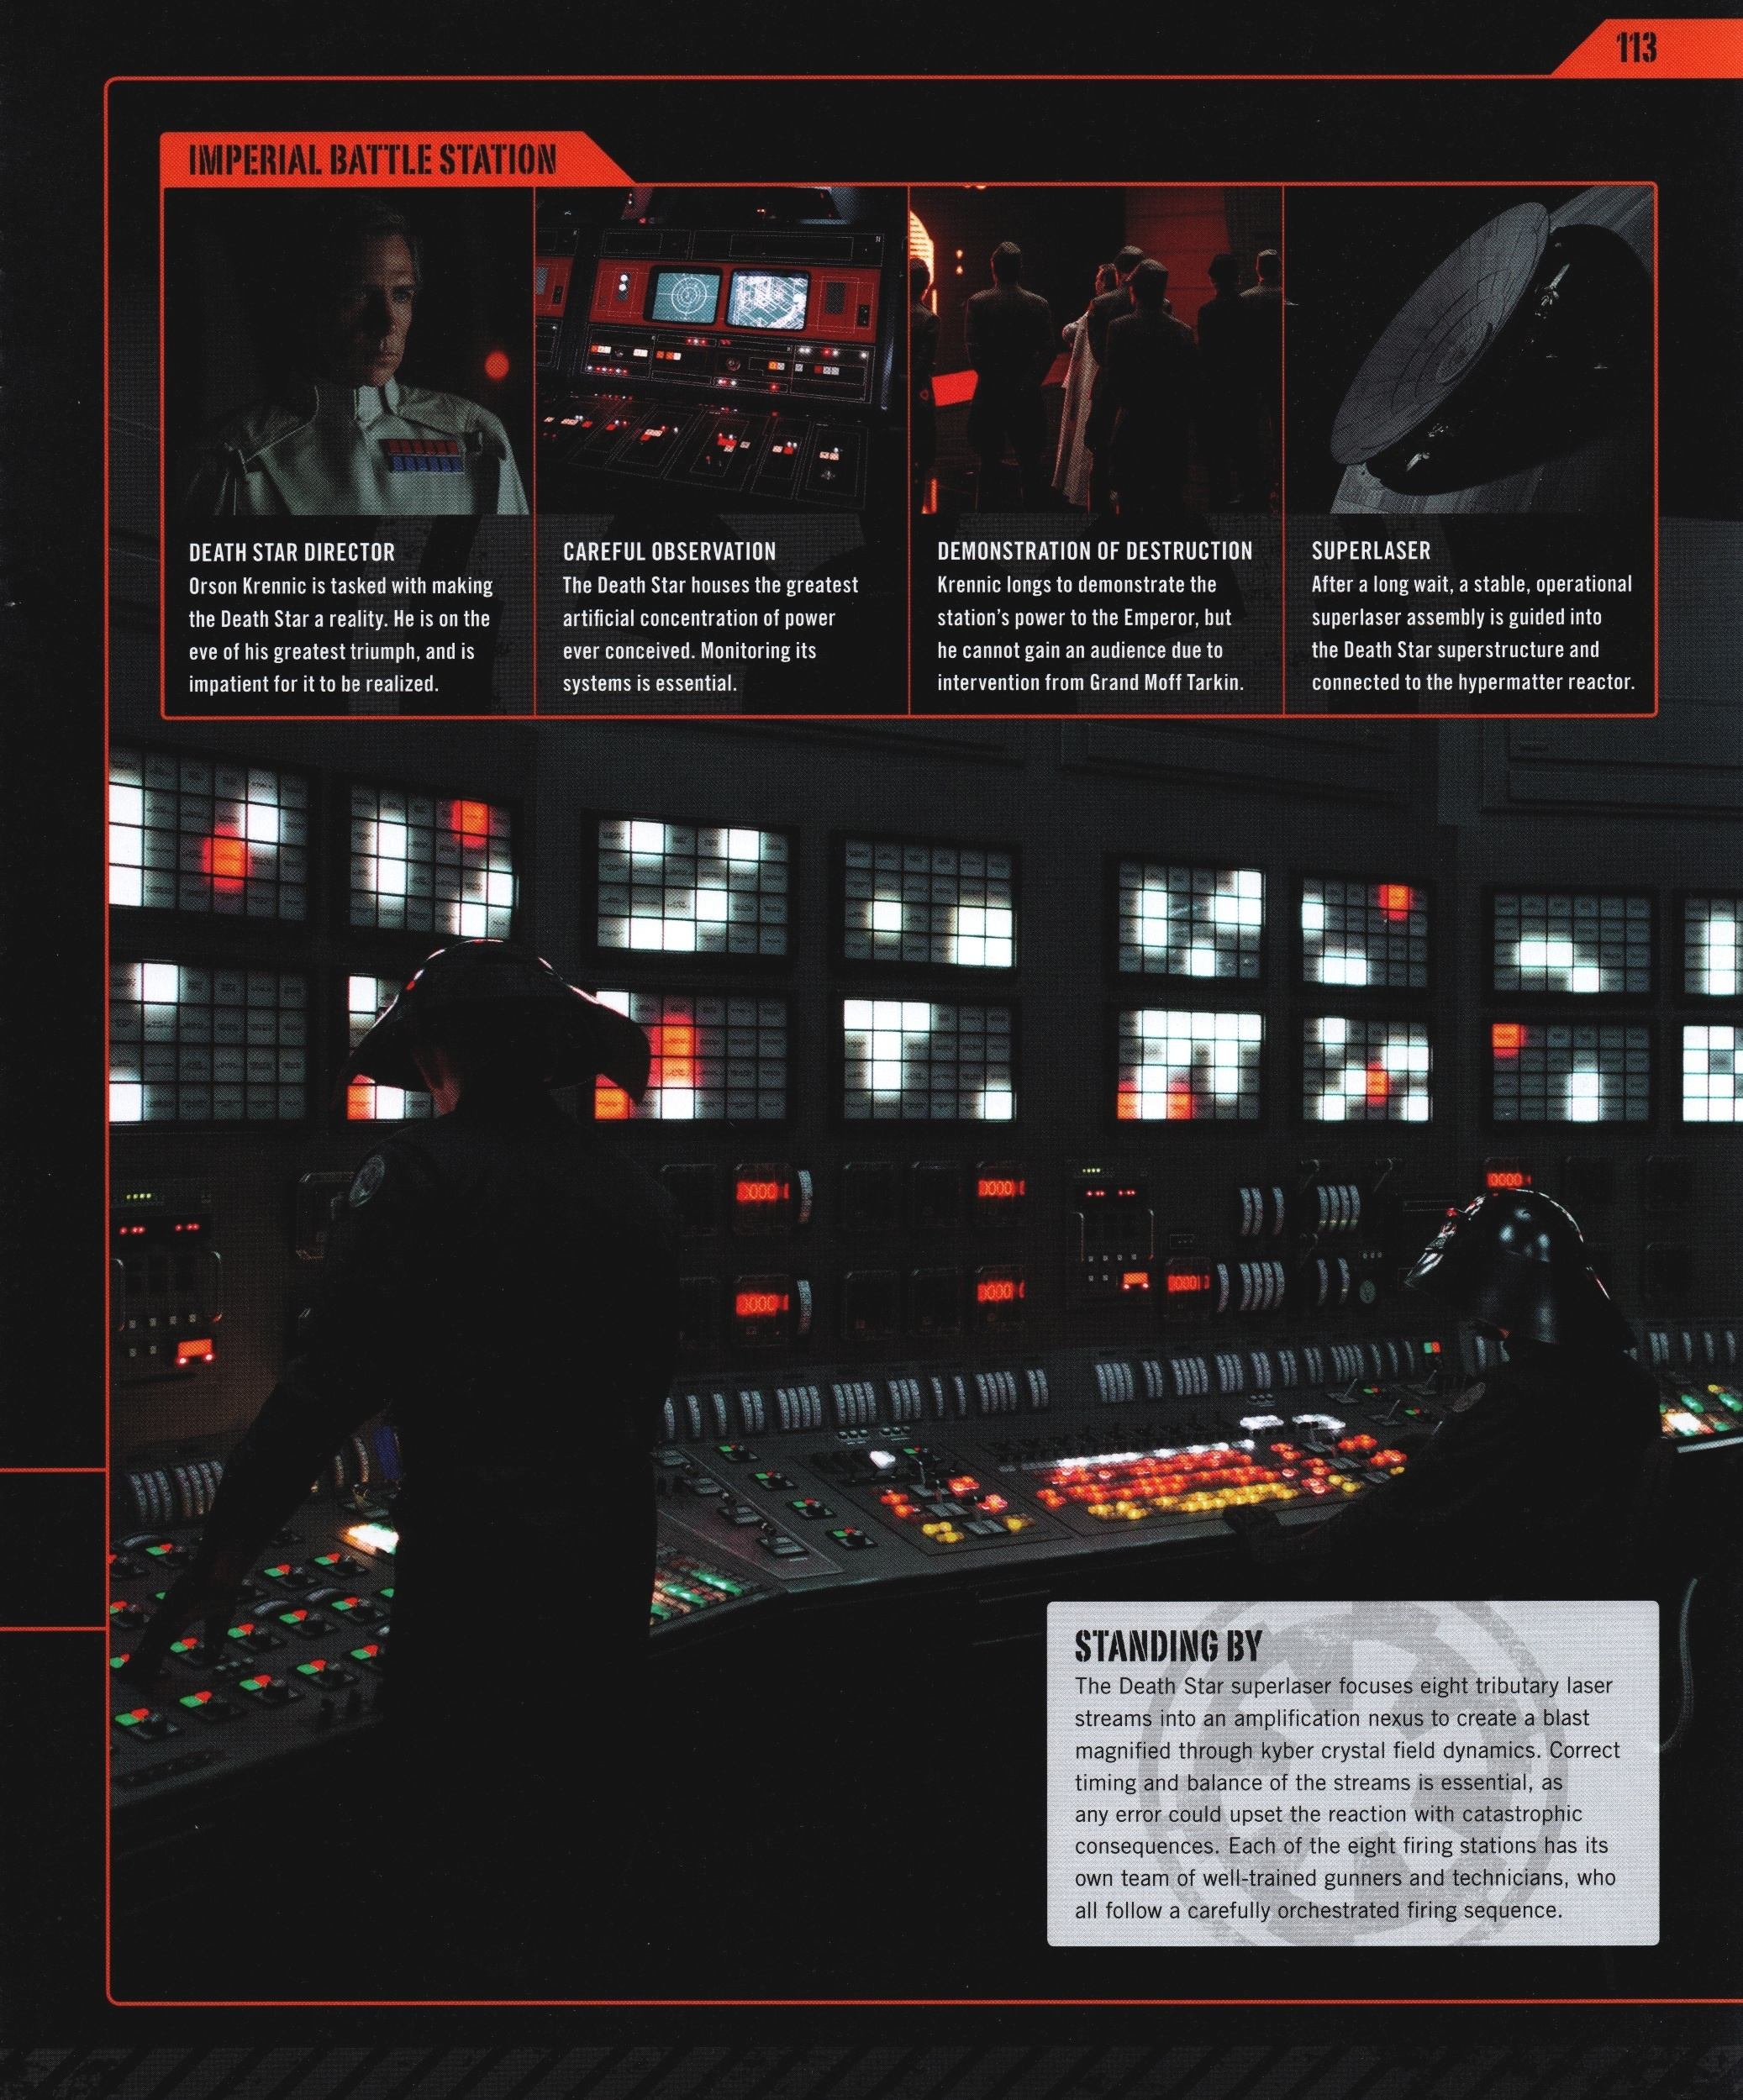 Rogue One Ultimate Visual Guide (b0bafett_Empire) p113